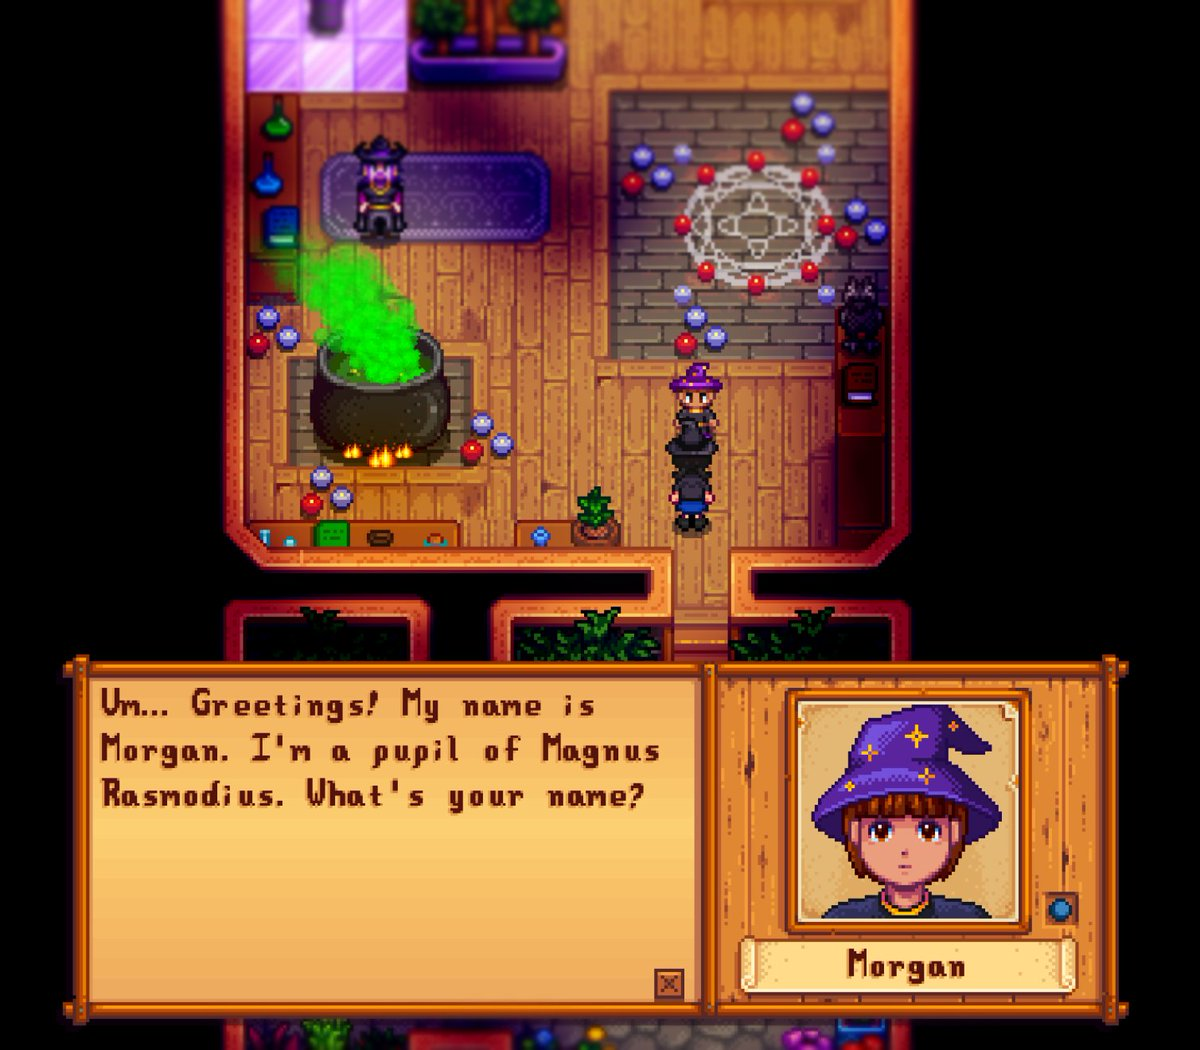 Flashshifter Pa Twitter Everyone Meet Morgan A Pupil Of The Wizard Who Arrives In Stardew Valley At The Start Of Year 3 Morgan Will Debut In Sve 1 10 Along With Many New You can also try the romance philosophy. stardew valley